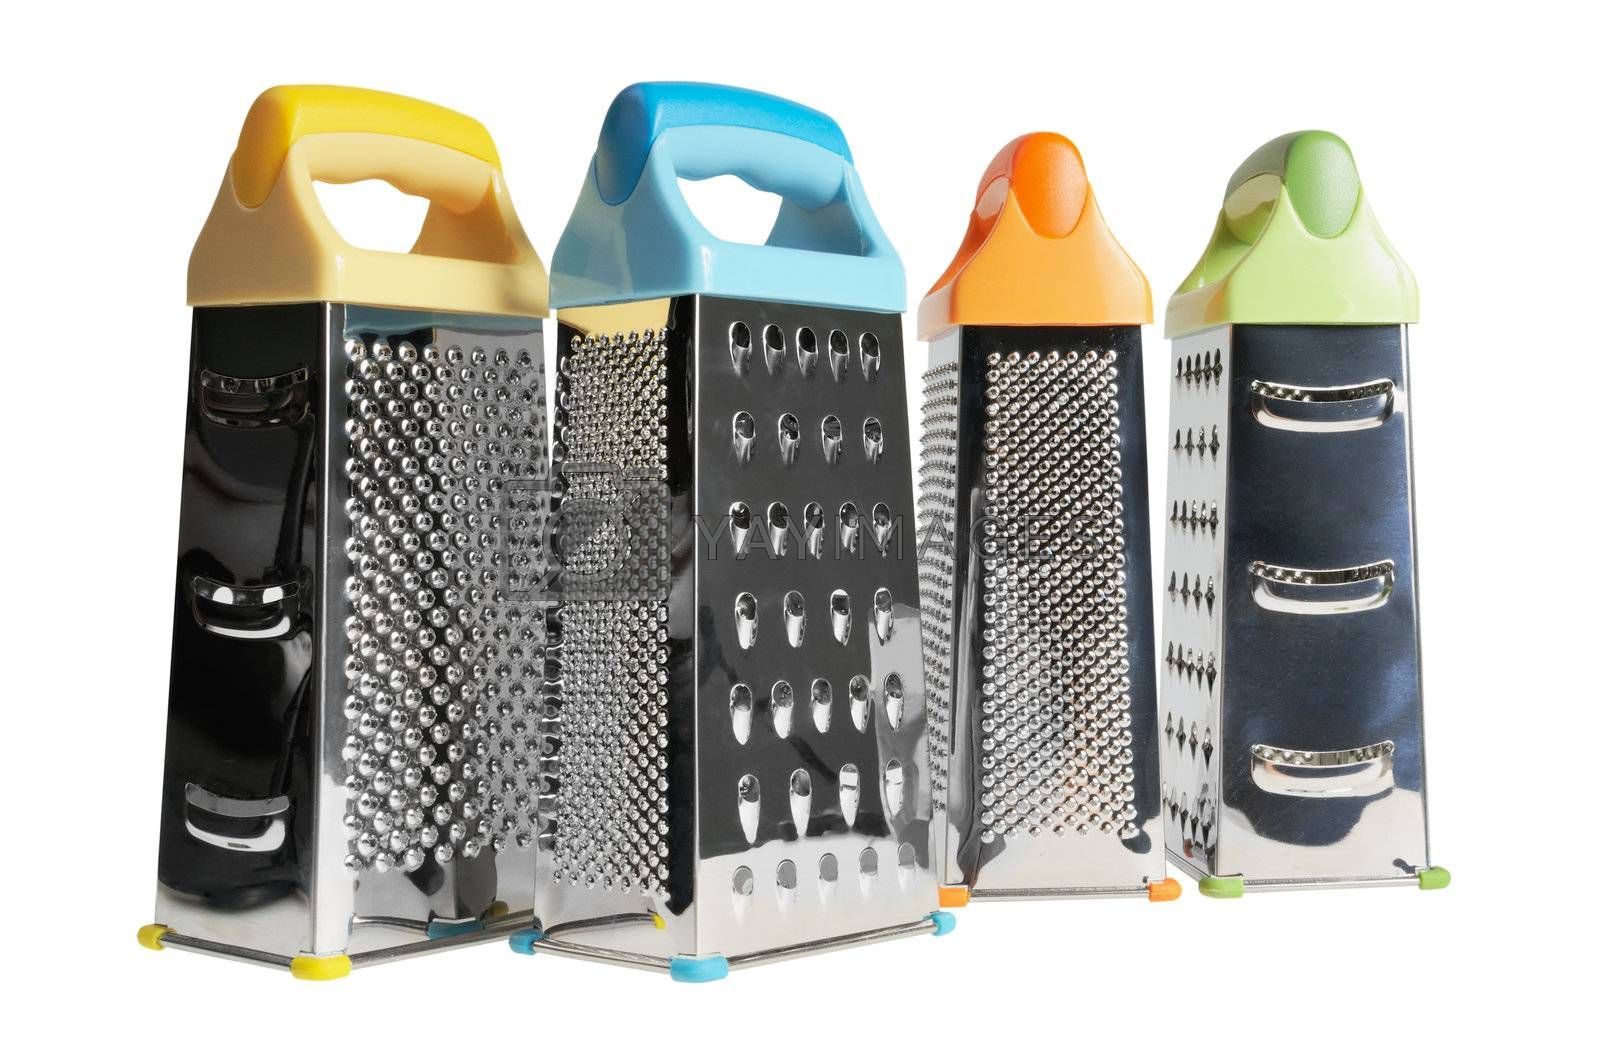 Kitchen grater different colors. Isolated on white.